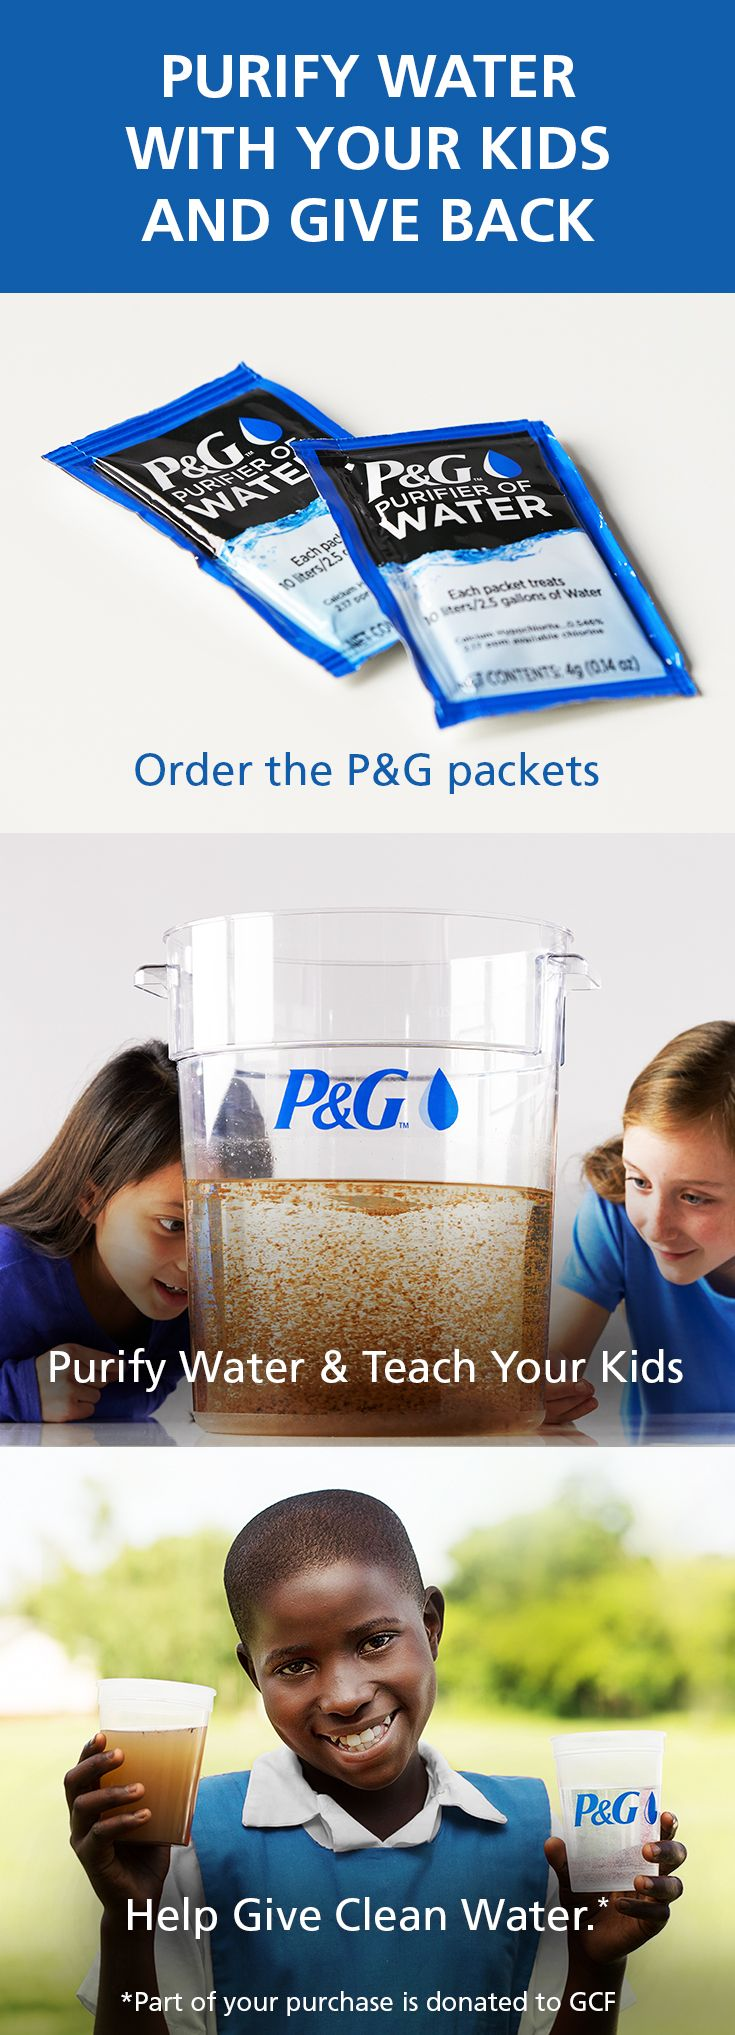 Try this water purification process at home with your kids and watch dirty water transform to clean water within minutes. Plus, teach your family about science, the Power of Clean Water, and giving back. Each set of P&G packets purchased donates 3 months' worth of clean water to a child in a developing country.*